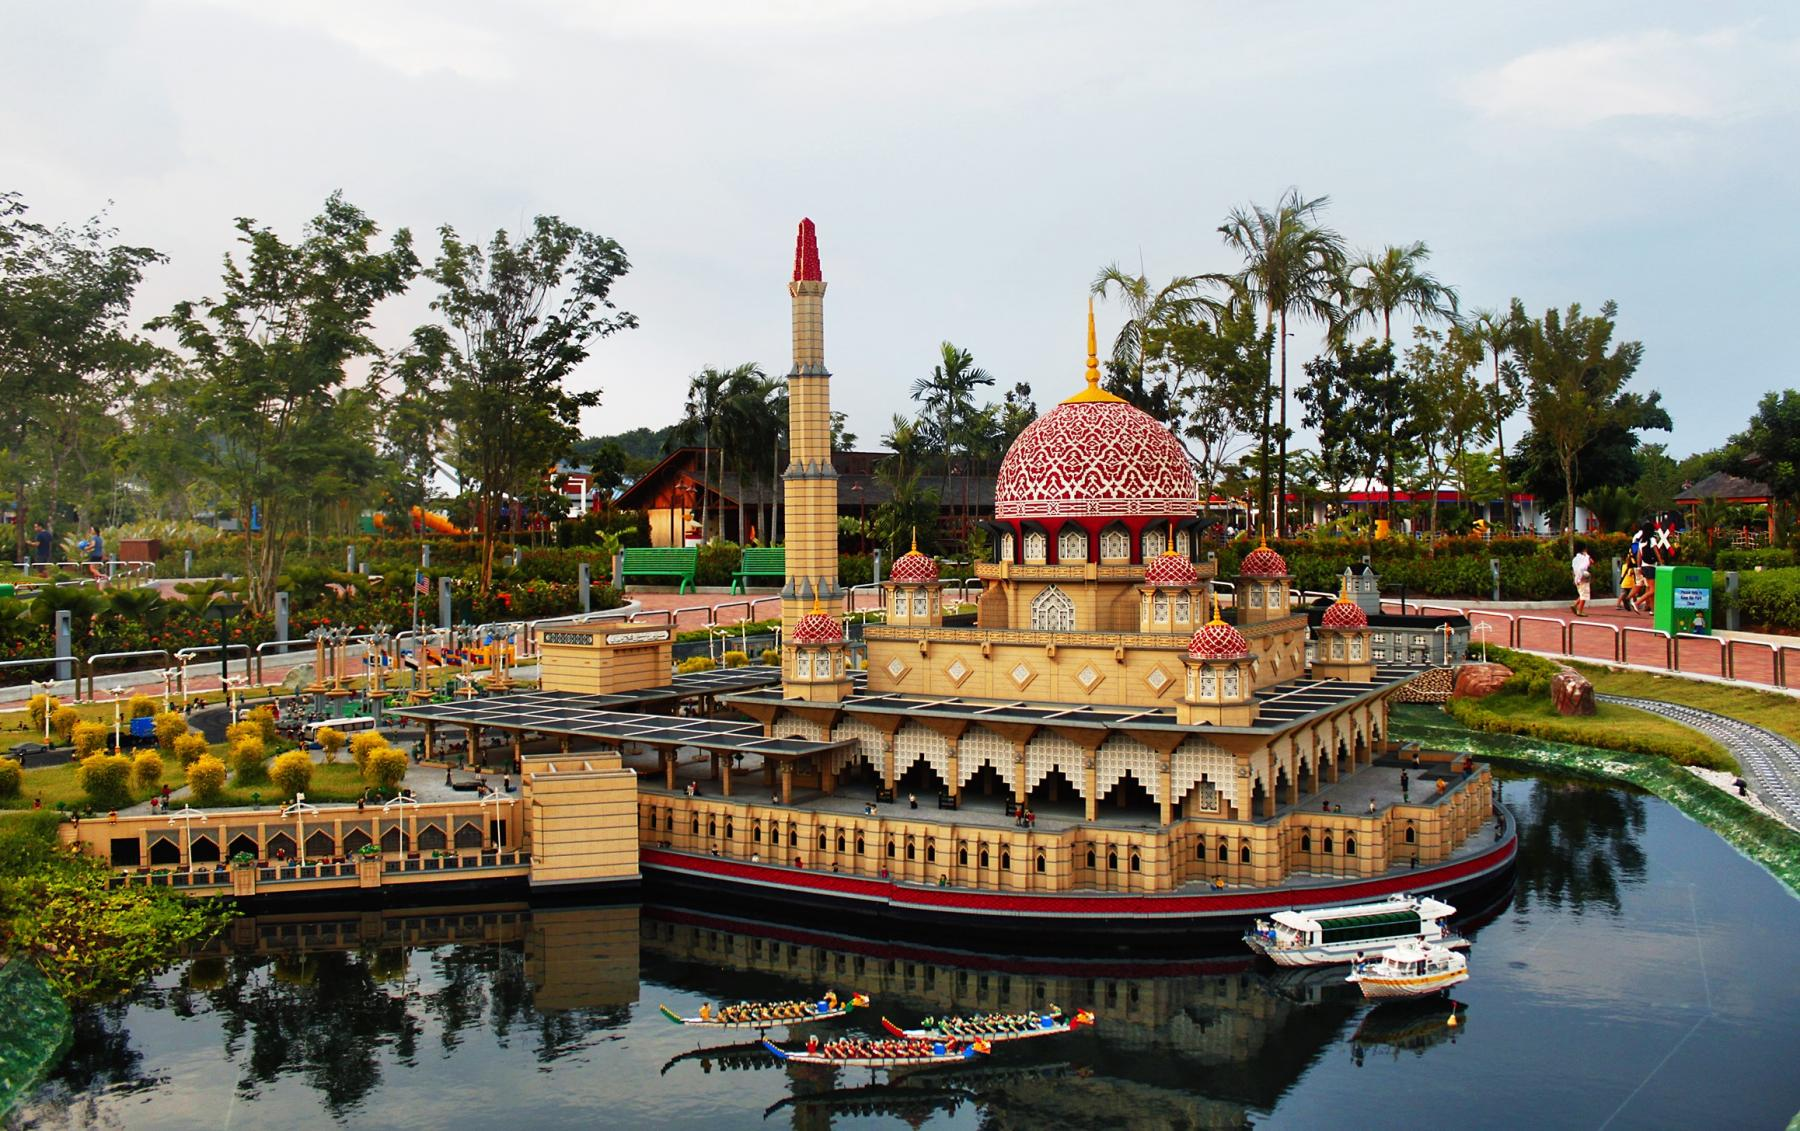 Day Trip: Join me for a LEGOLAND Adventure from NTU Campus starting at LEGOLAND, Jalan Legoland, Medini, Nusajaya, Johor, Malaysia